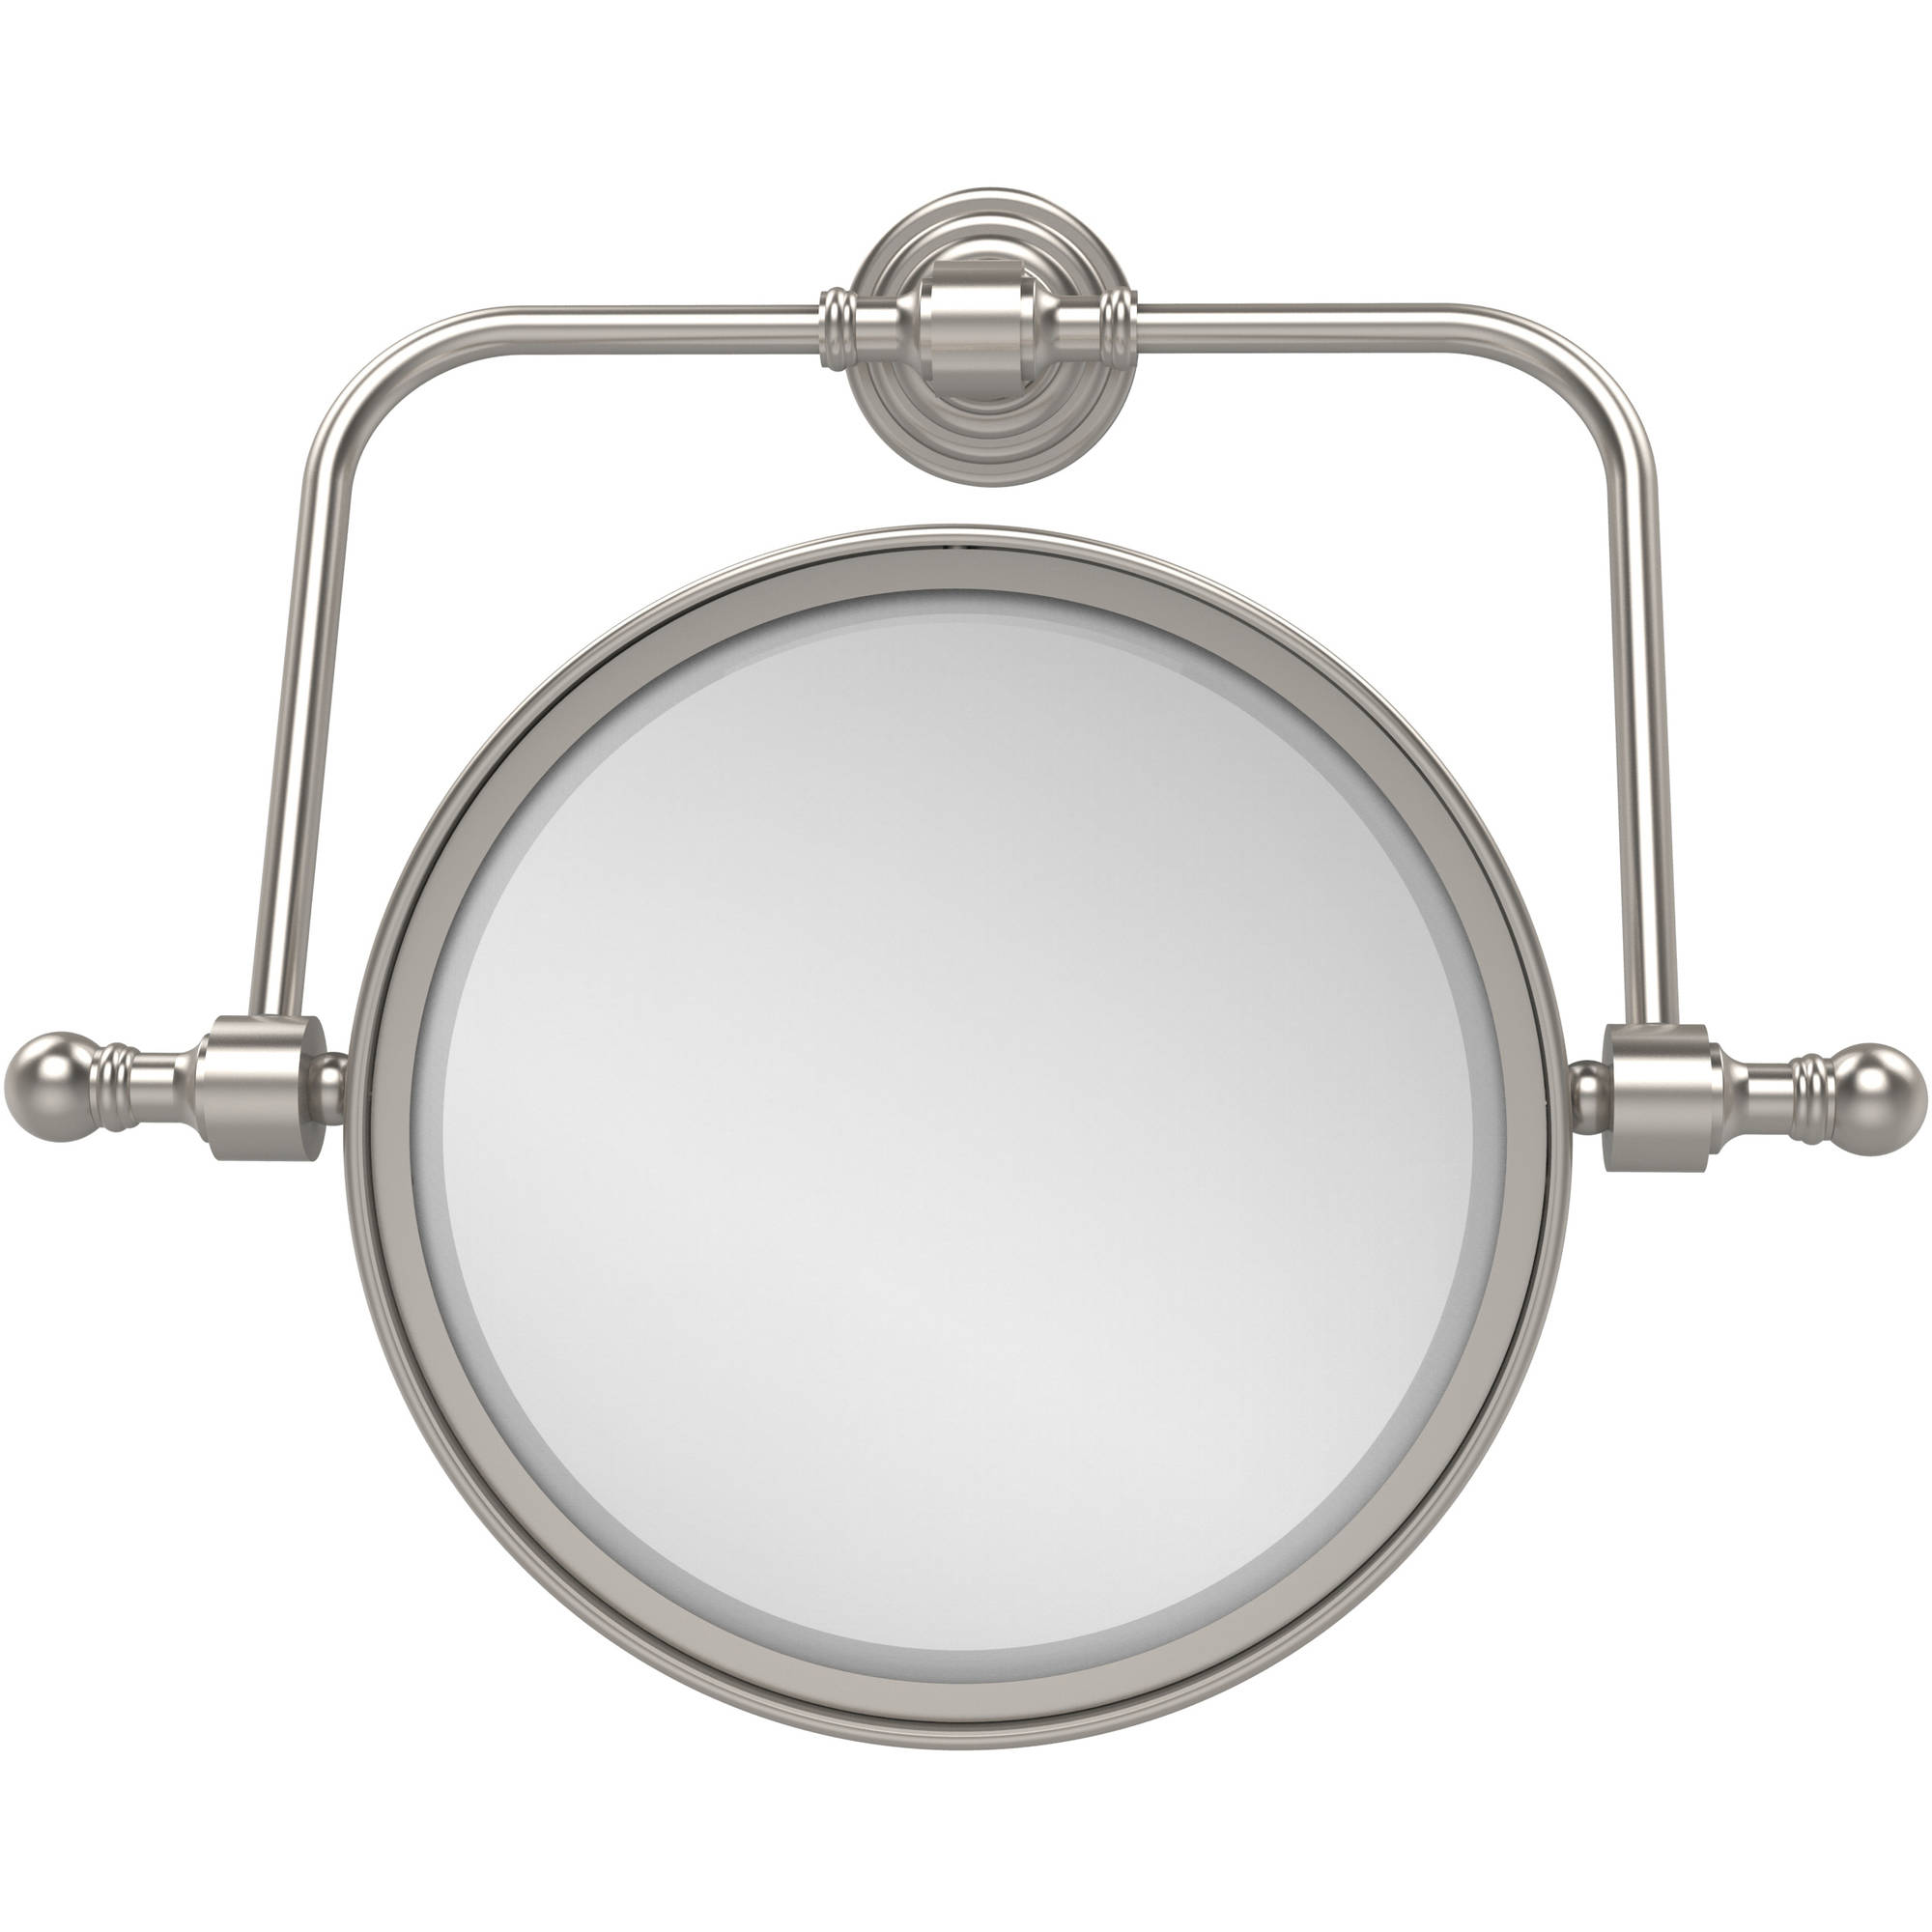 """Retro Wave Collection Wall-Mounted Swivel Make-Up Mirror, 8"""" Diameter with 2x Magnification (Build to Order)"""